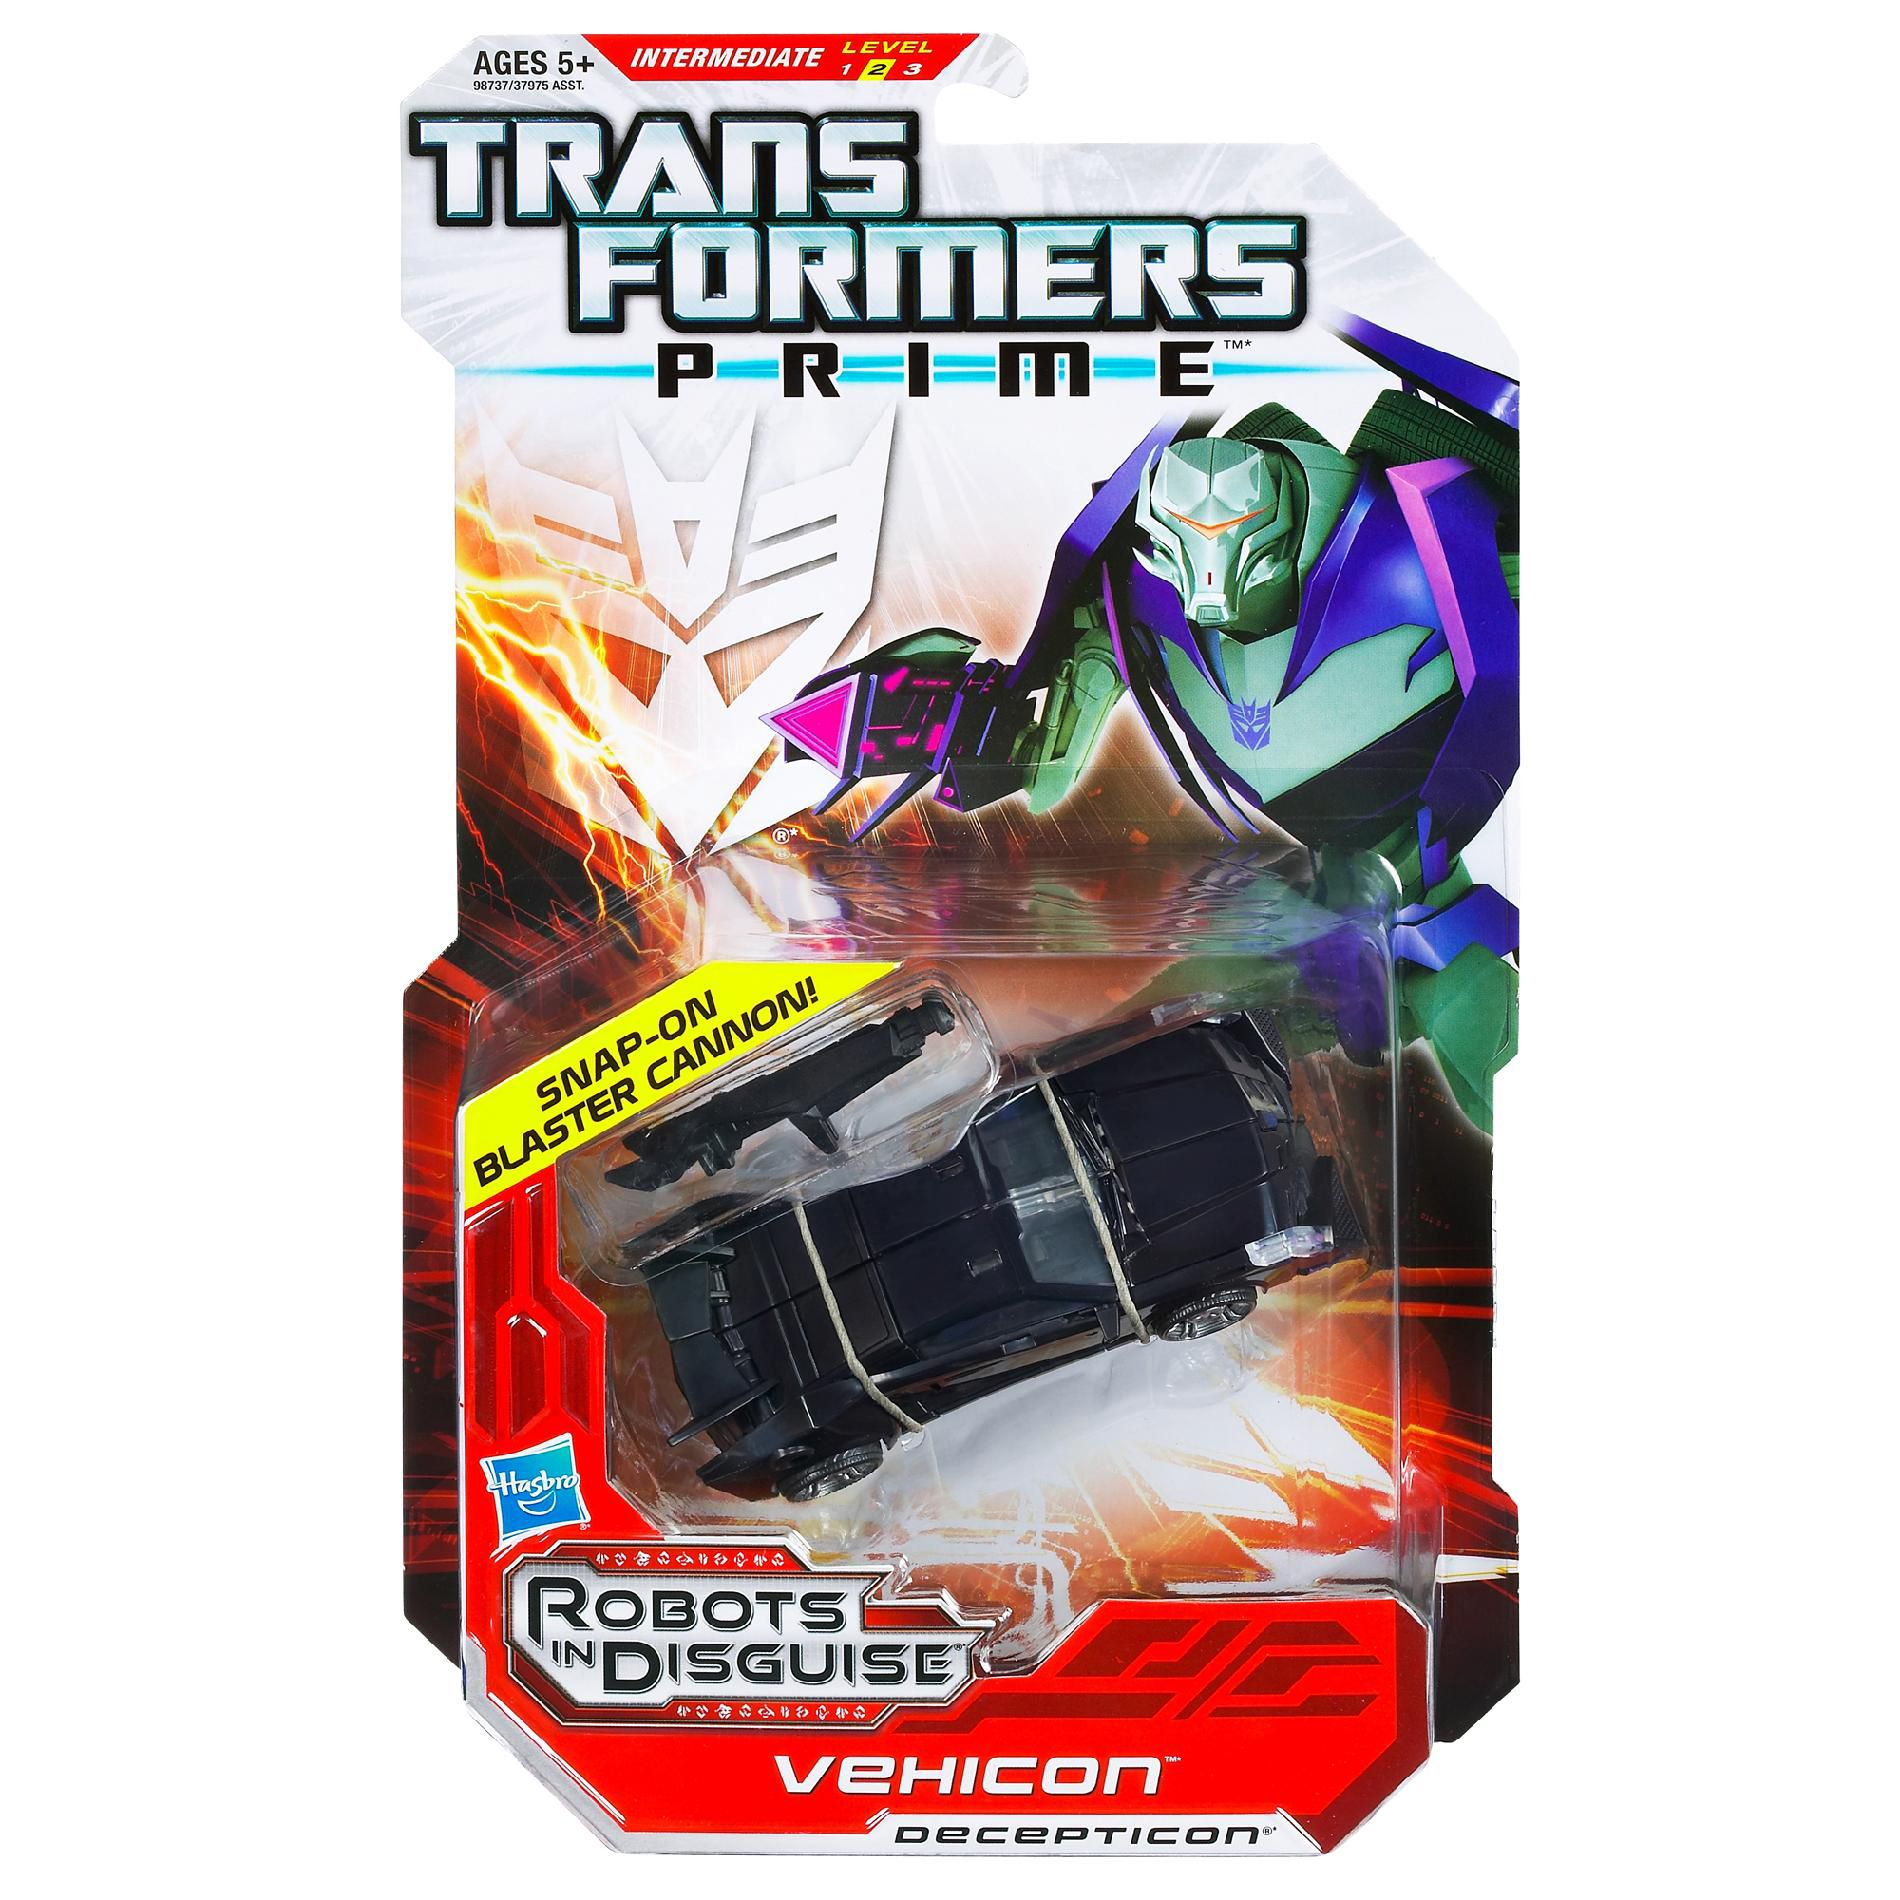 PRIME ROBOTS IN DISGUISE DELUXE CLASS SERIES 1 VEHICON                                                                           at mygofer.com